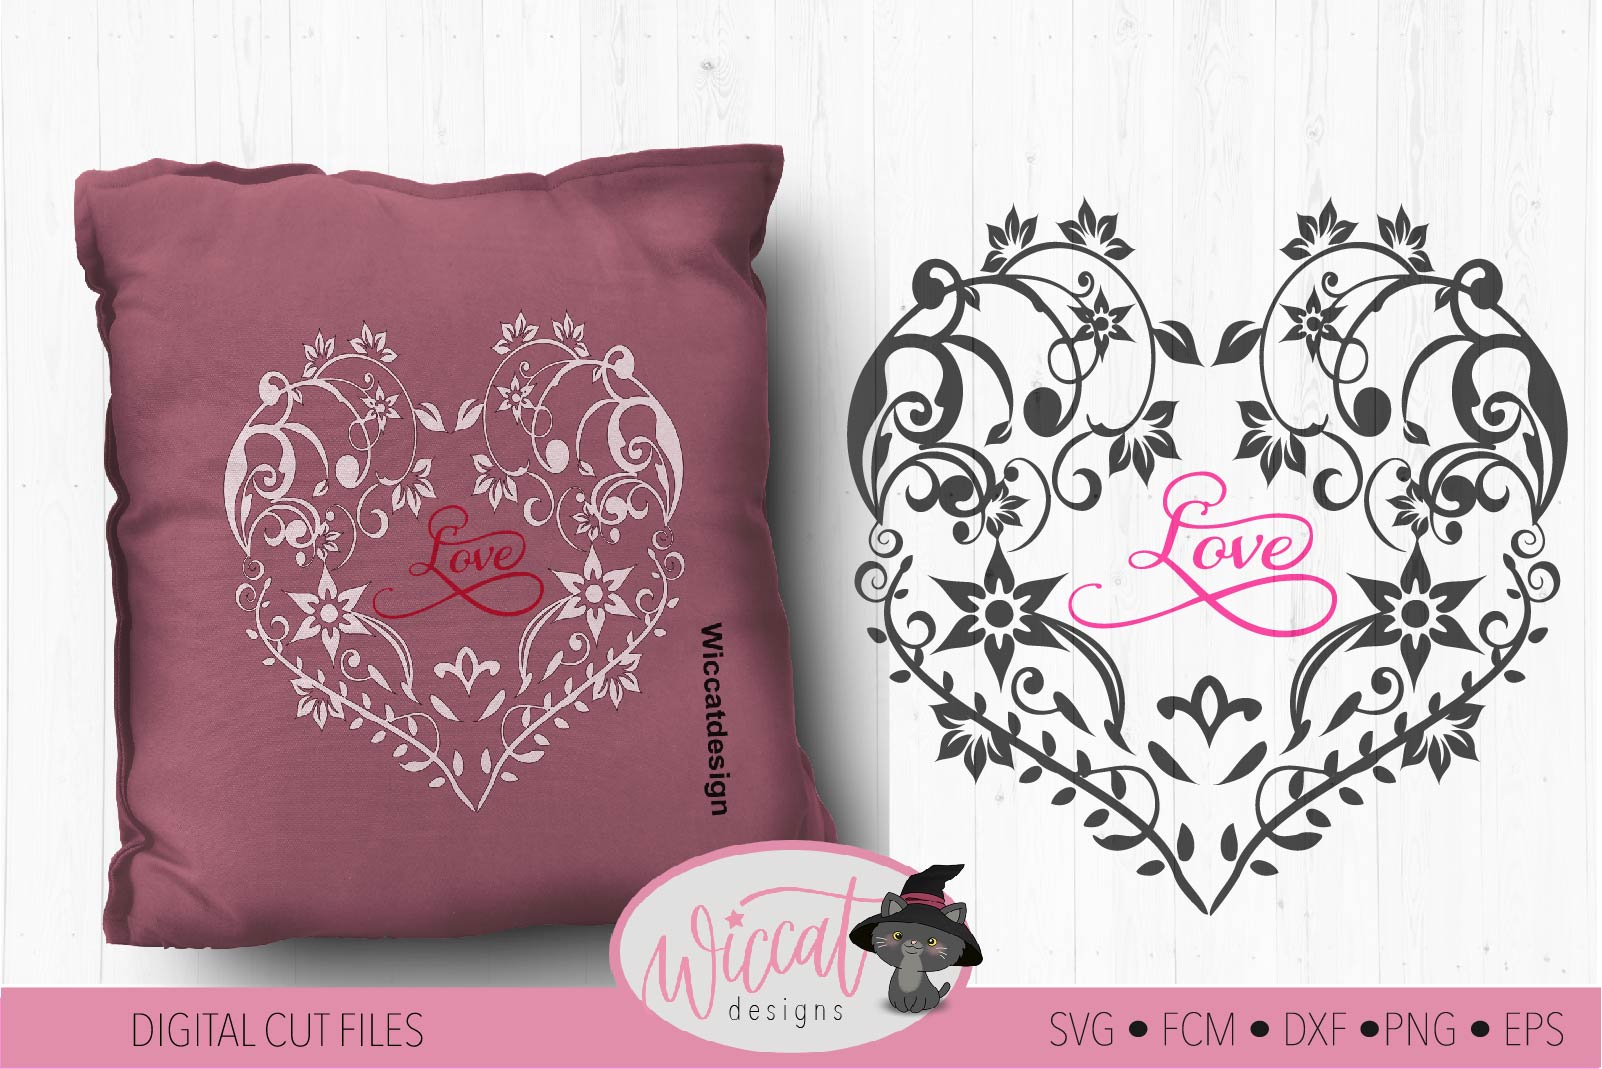 Flower heart svg, mothers day, lace cut file, glass block example image 1